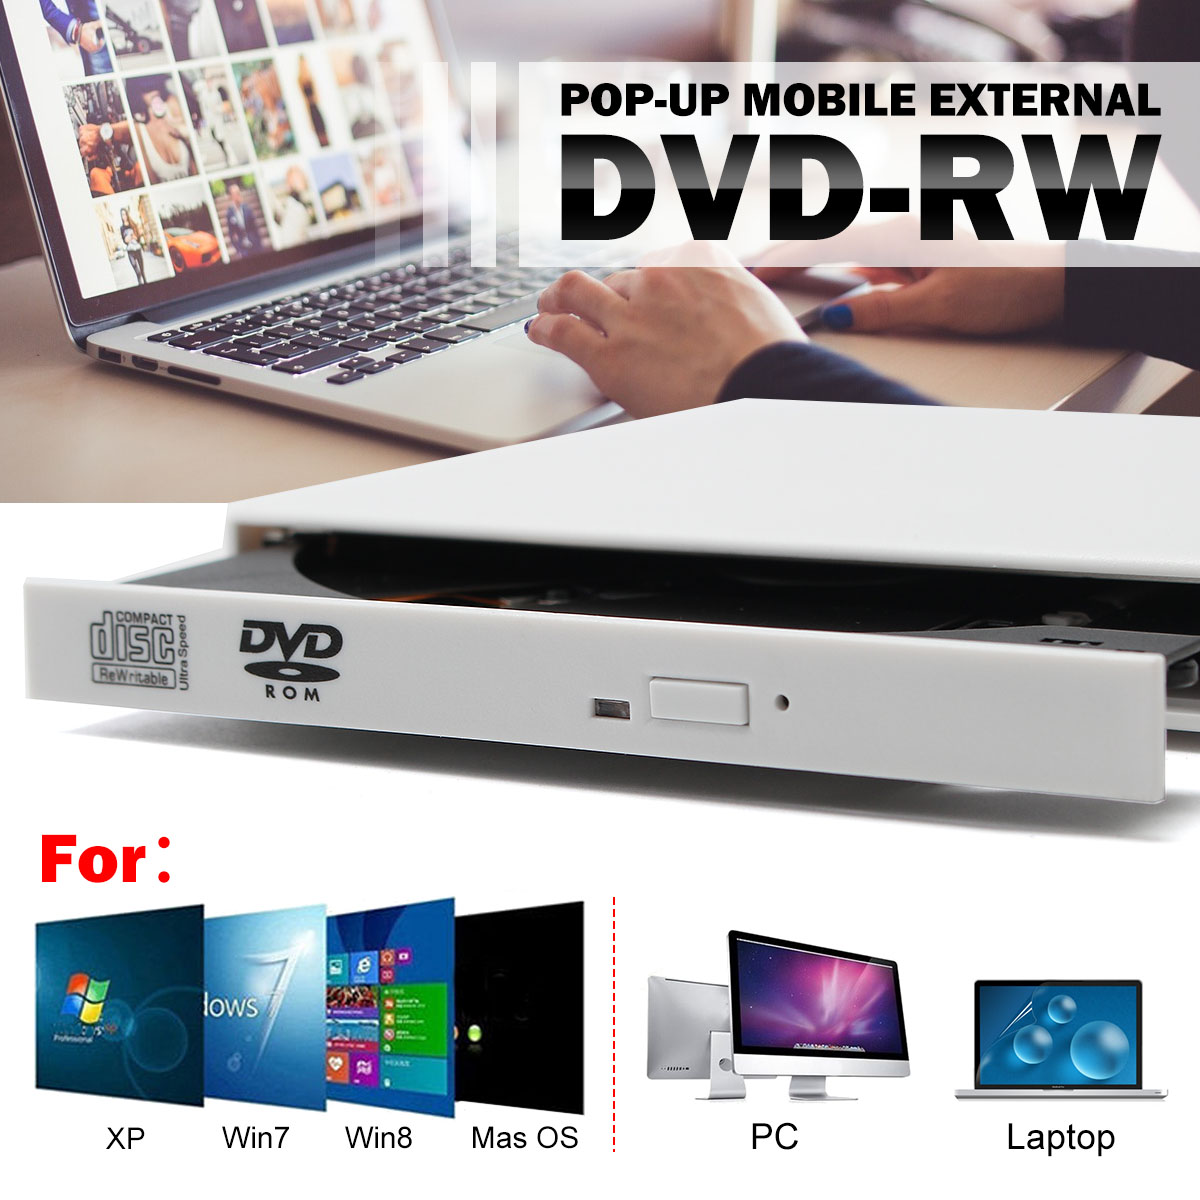 USB 2.0 Portable Ultra Slim External Slot-in DVD-RW CD-RW CD DVD ROM Player Drive Writer Rewriter Burner For PC